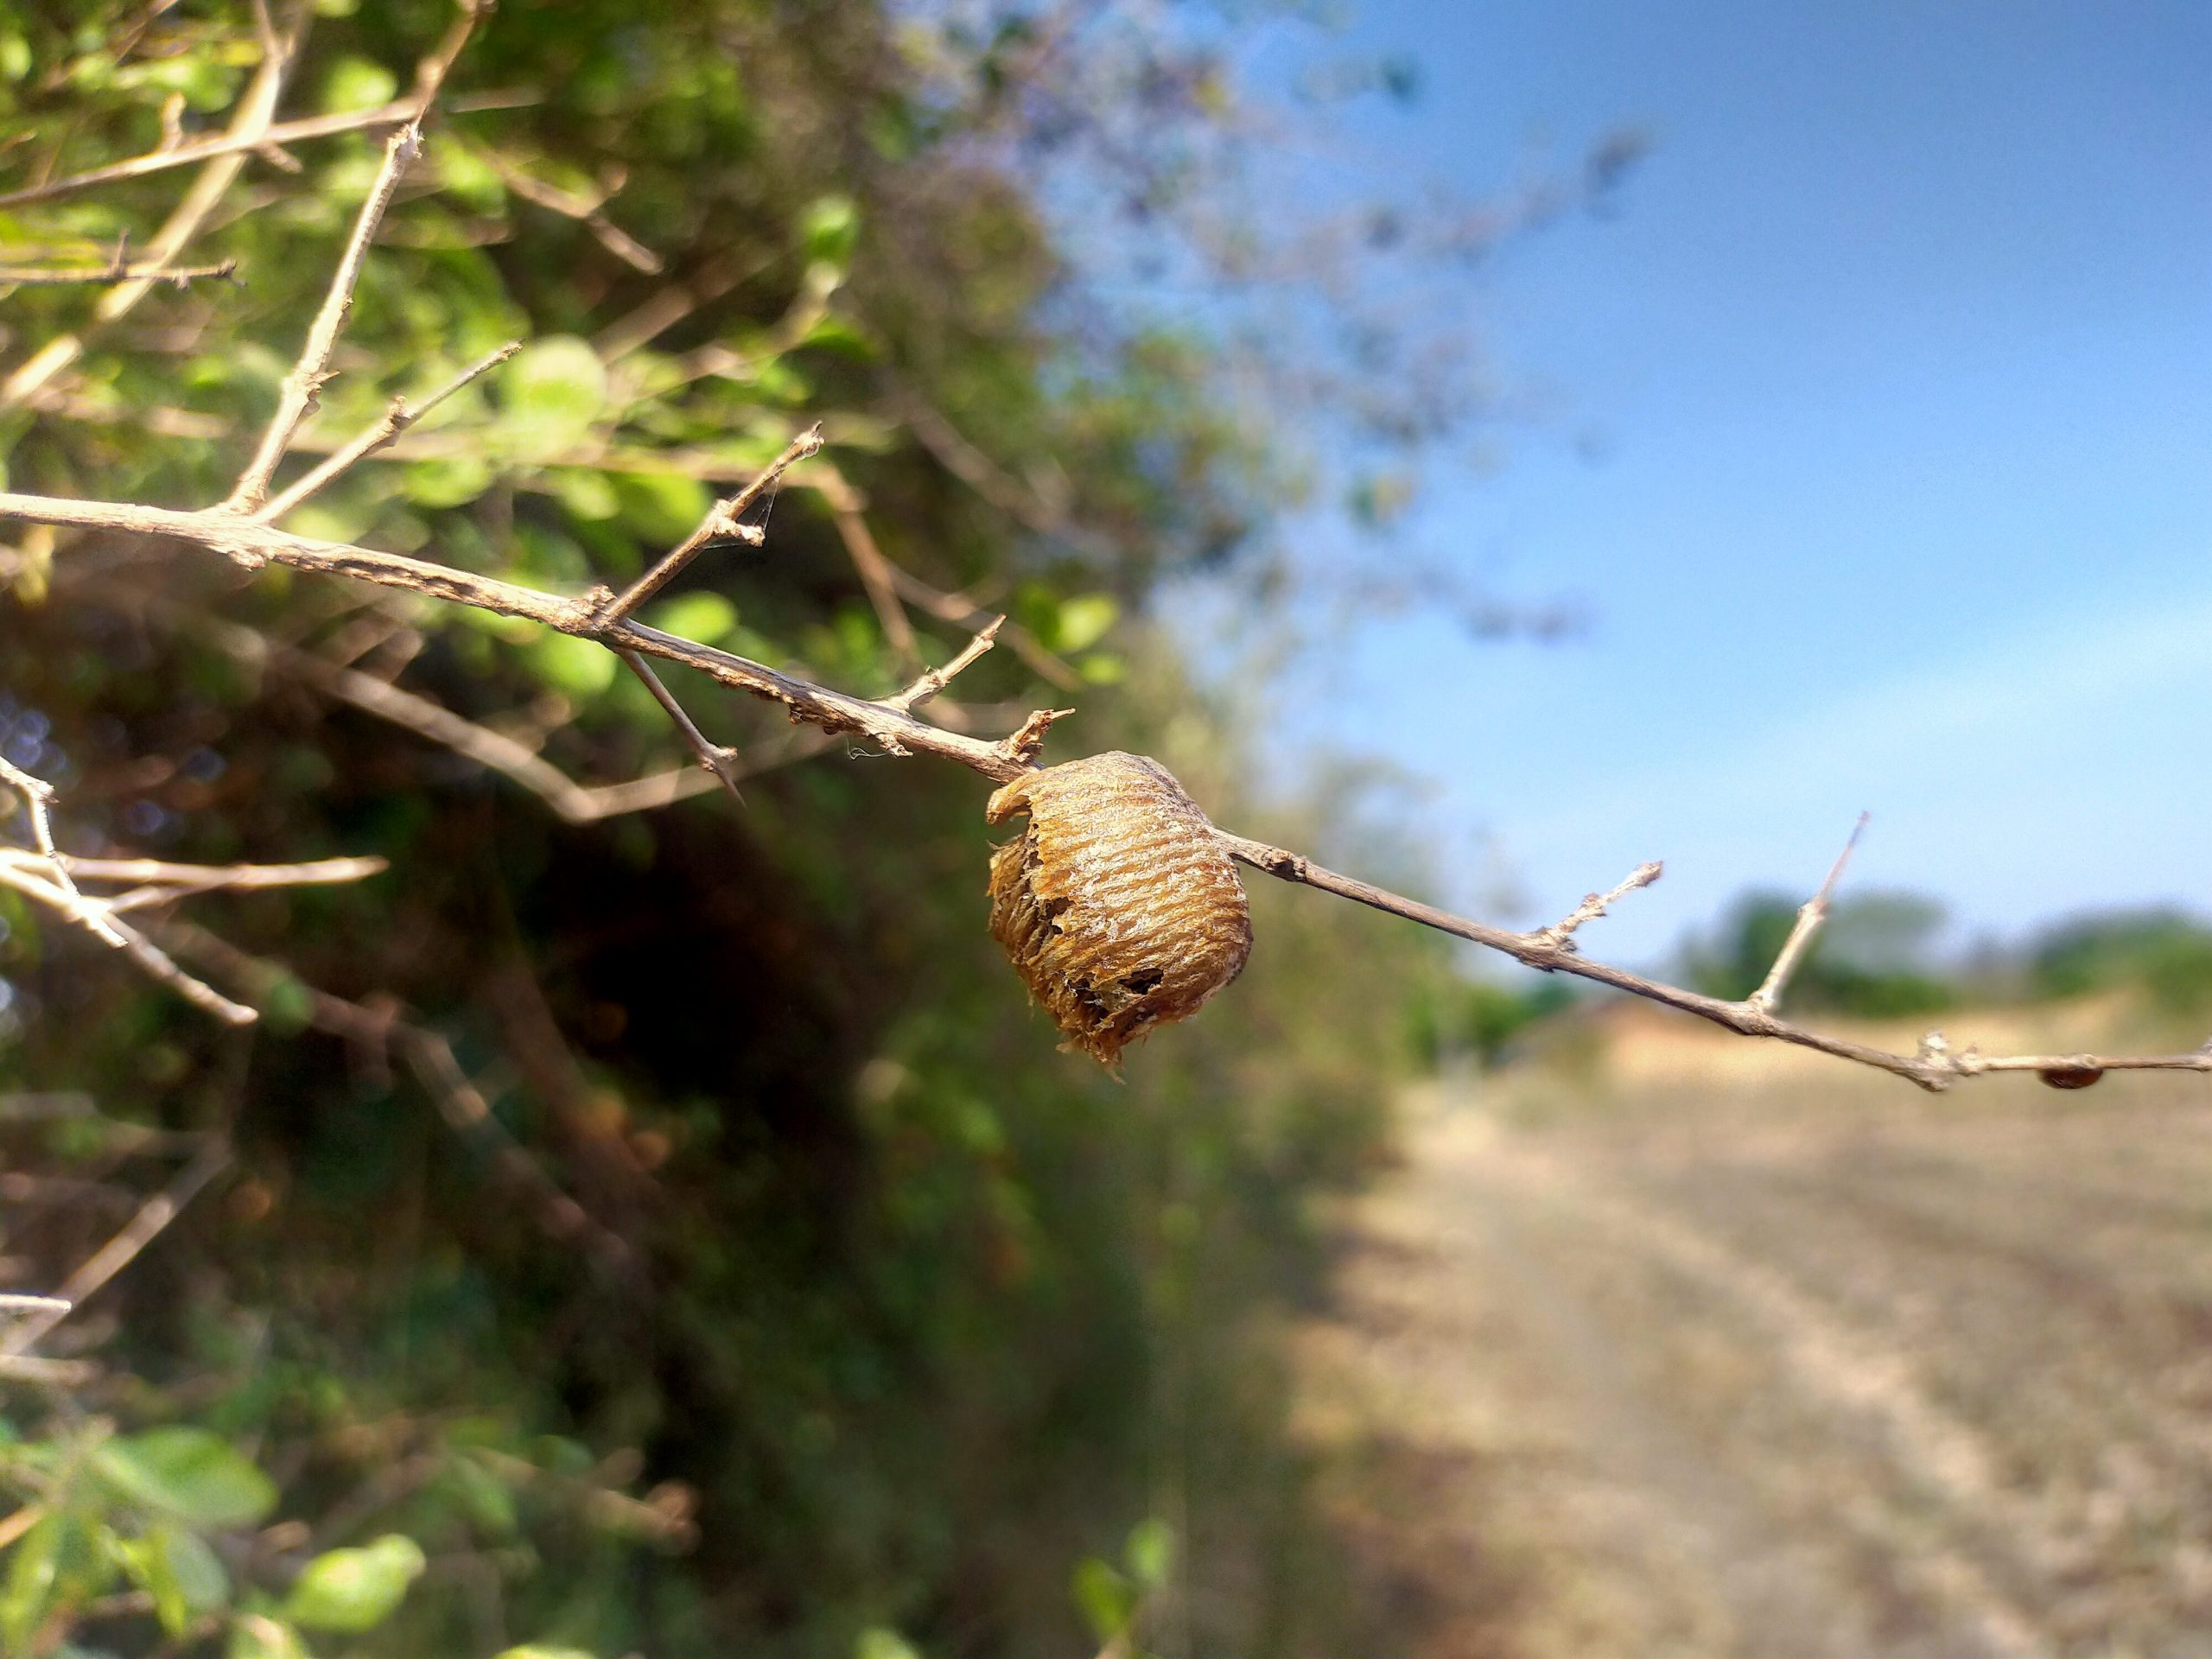 Insect Nest on plant